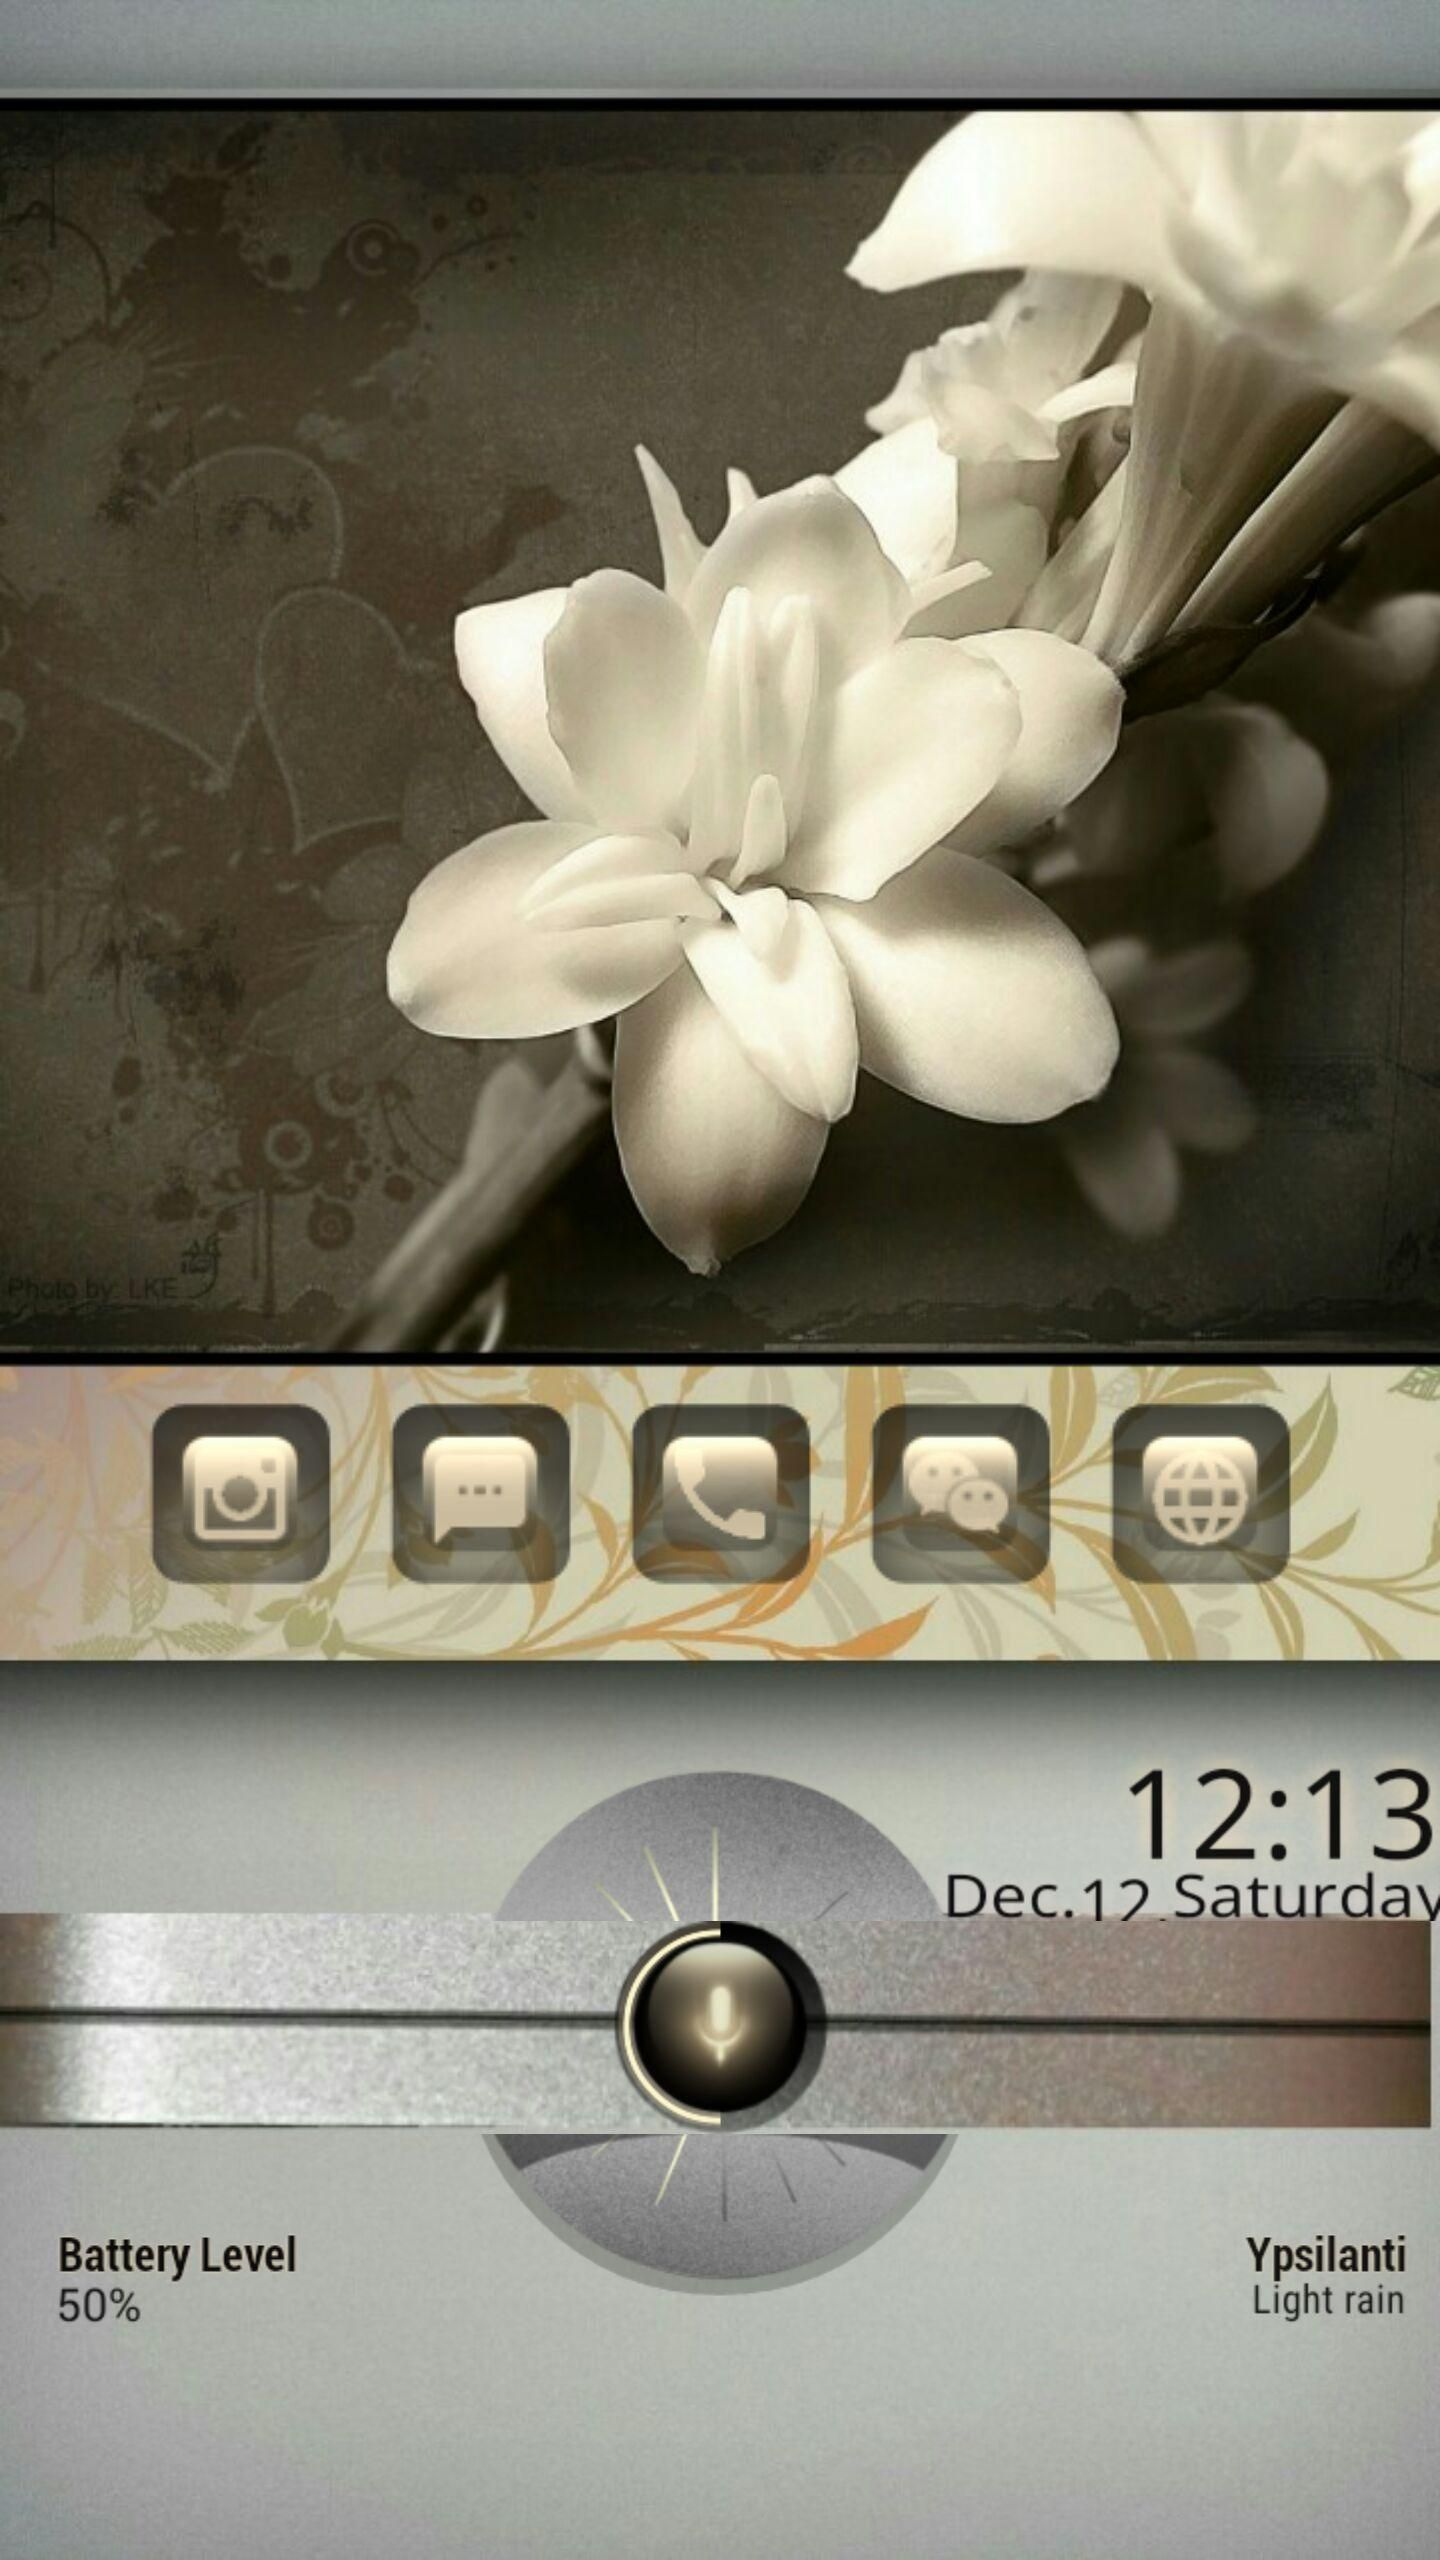 Pin by Sarat Sahoo on Homescreen (With images